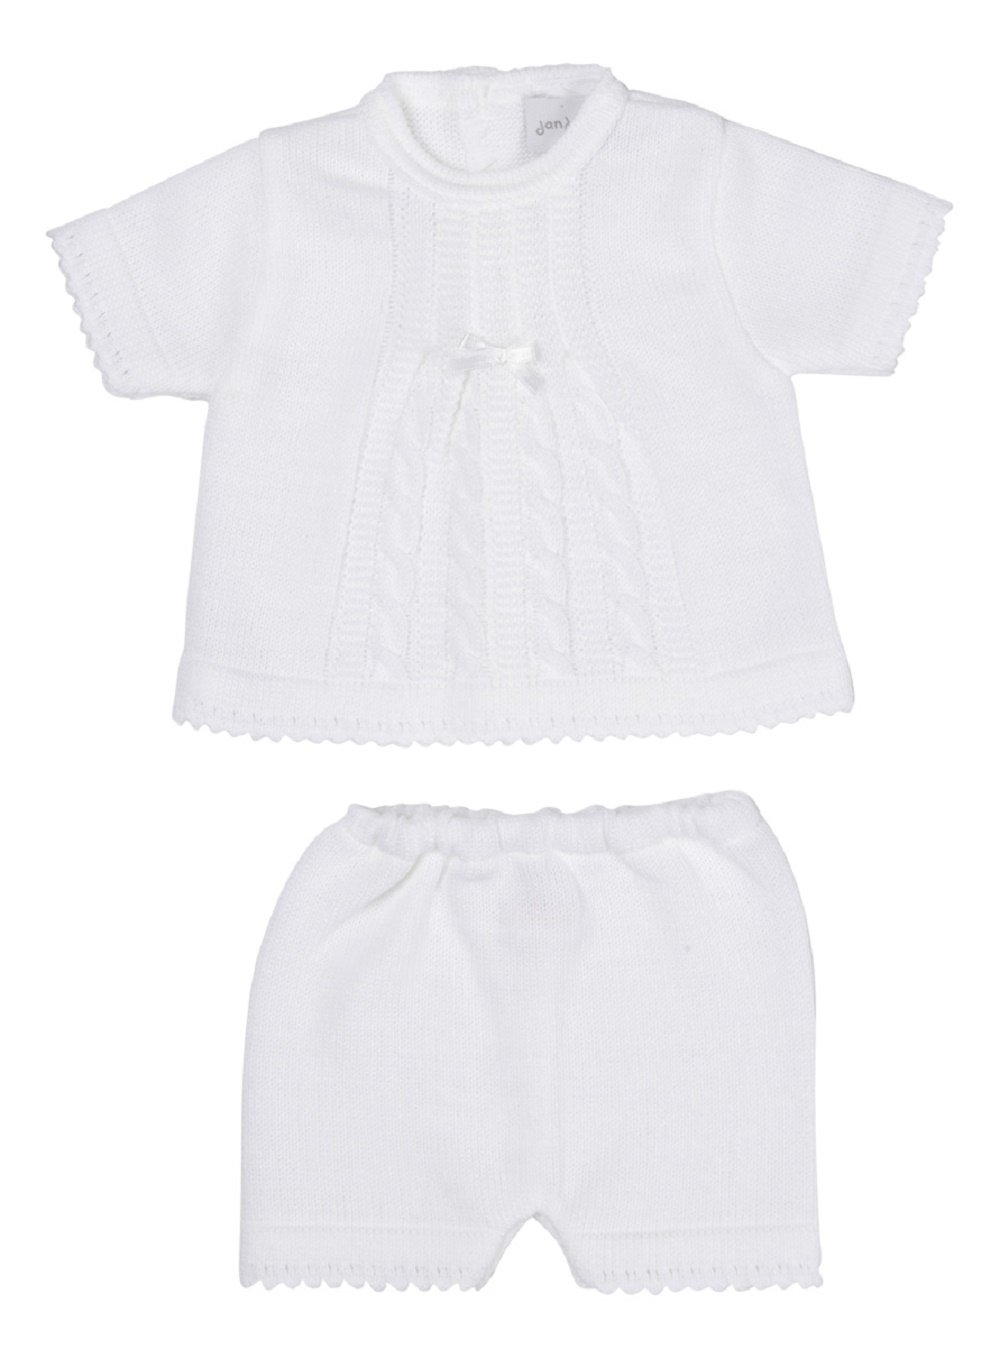 New in ! Spanish Style Baby Boys 2 Piece Knitted Summer Short and Top Set